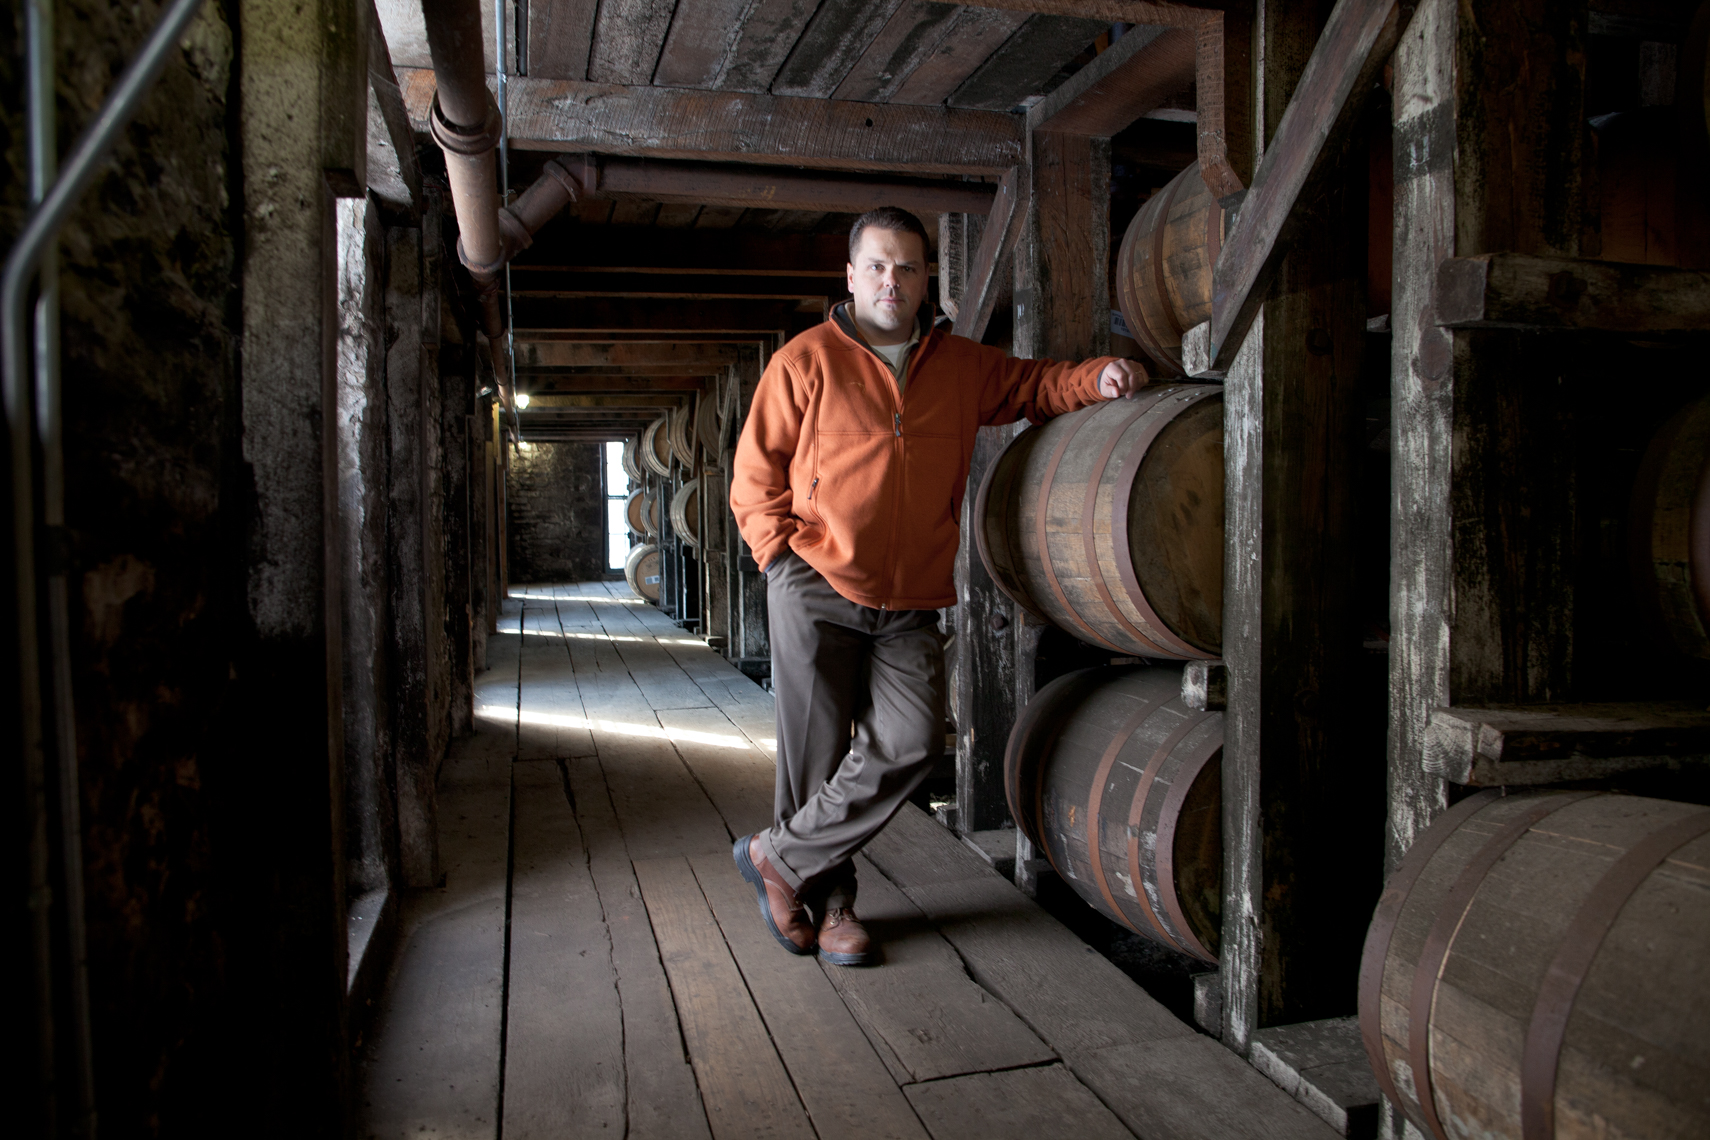 Buffalo Trace, Harlen Wheatly, Nashville portrait photographer, travel photographer, Kristina Krug, whiskey barrels, rick house, Southern Makers